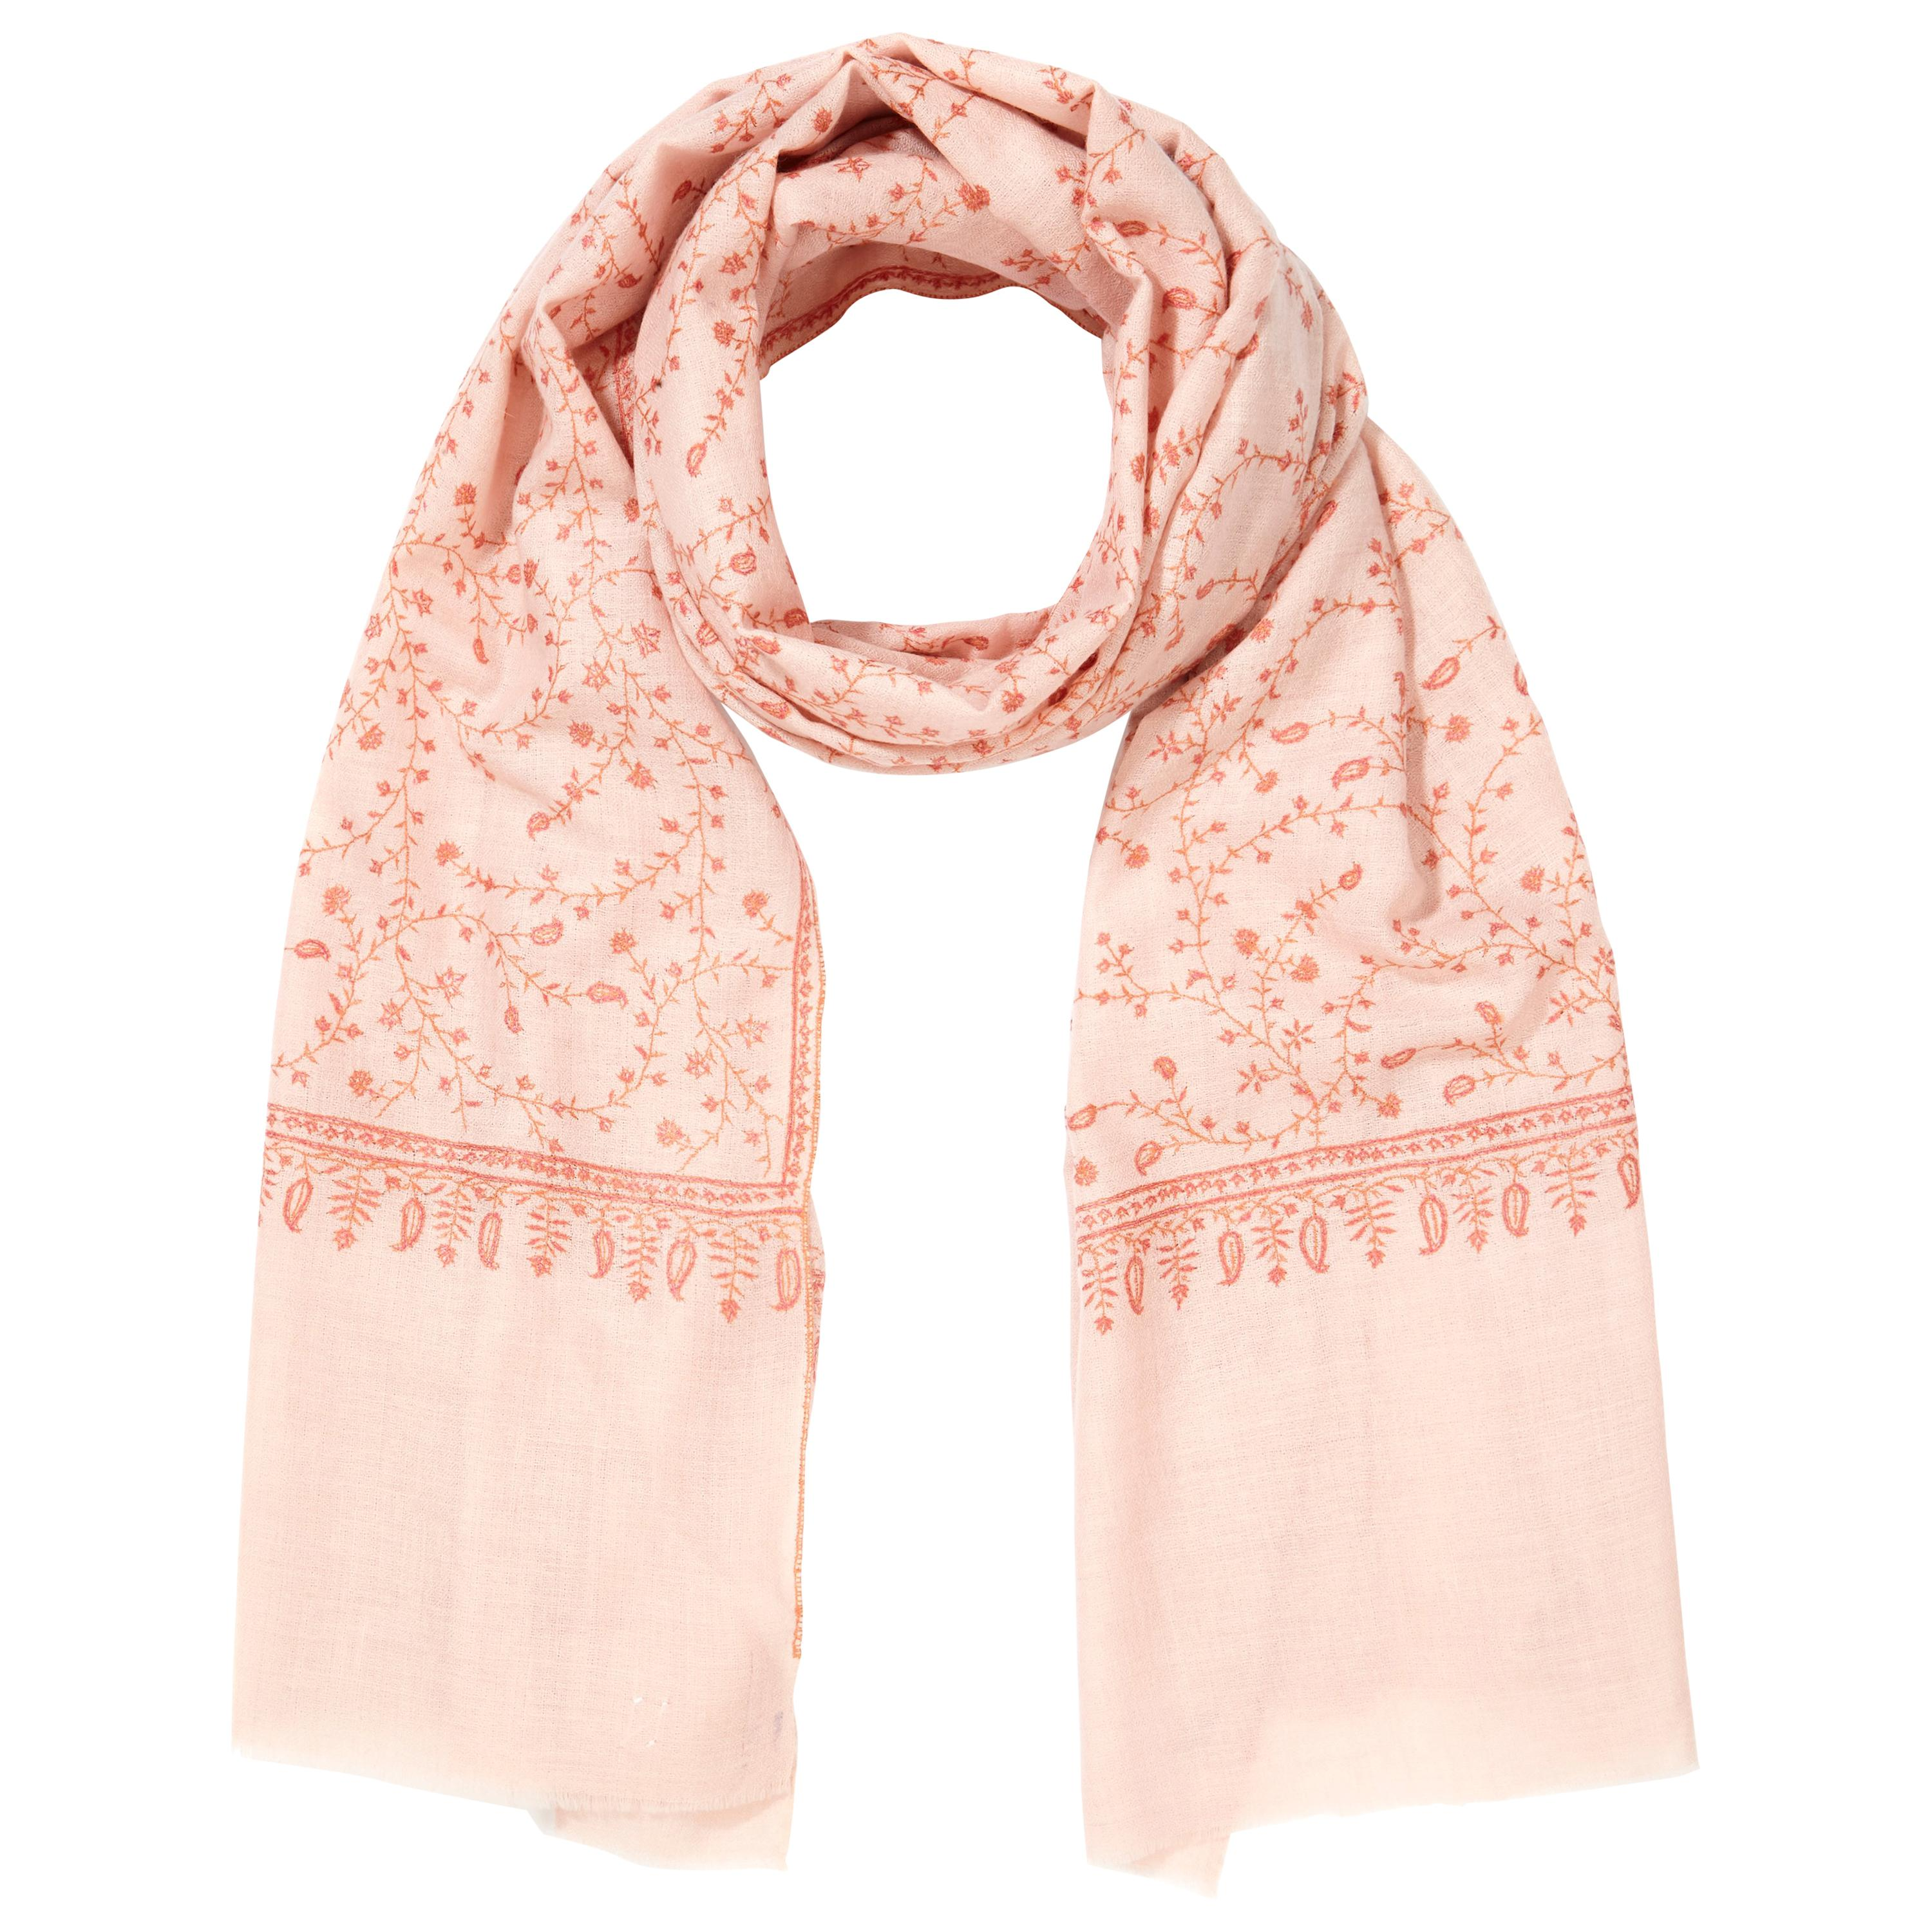 Limited Edition Hand Embroidered Pale Pink 100% Cashmere Shawl made in Kashmir